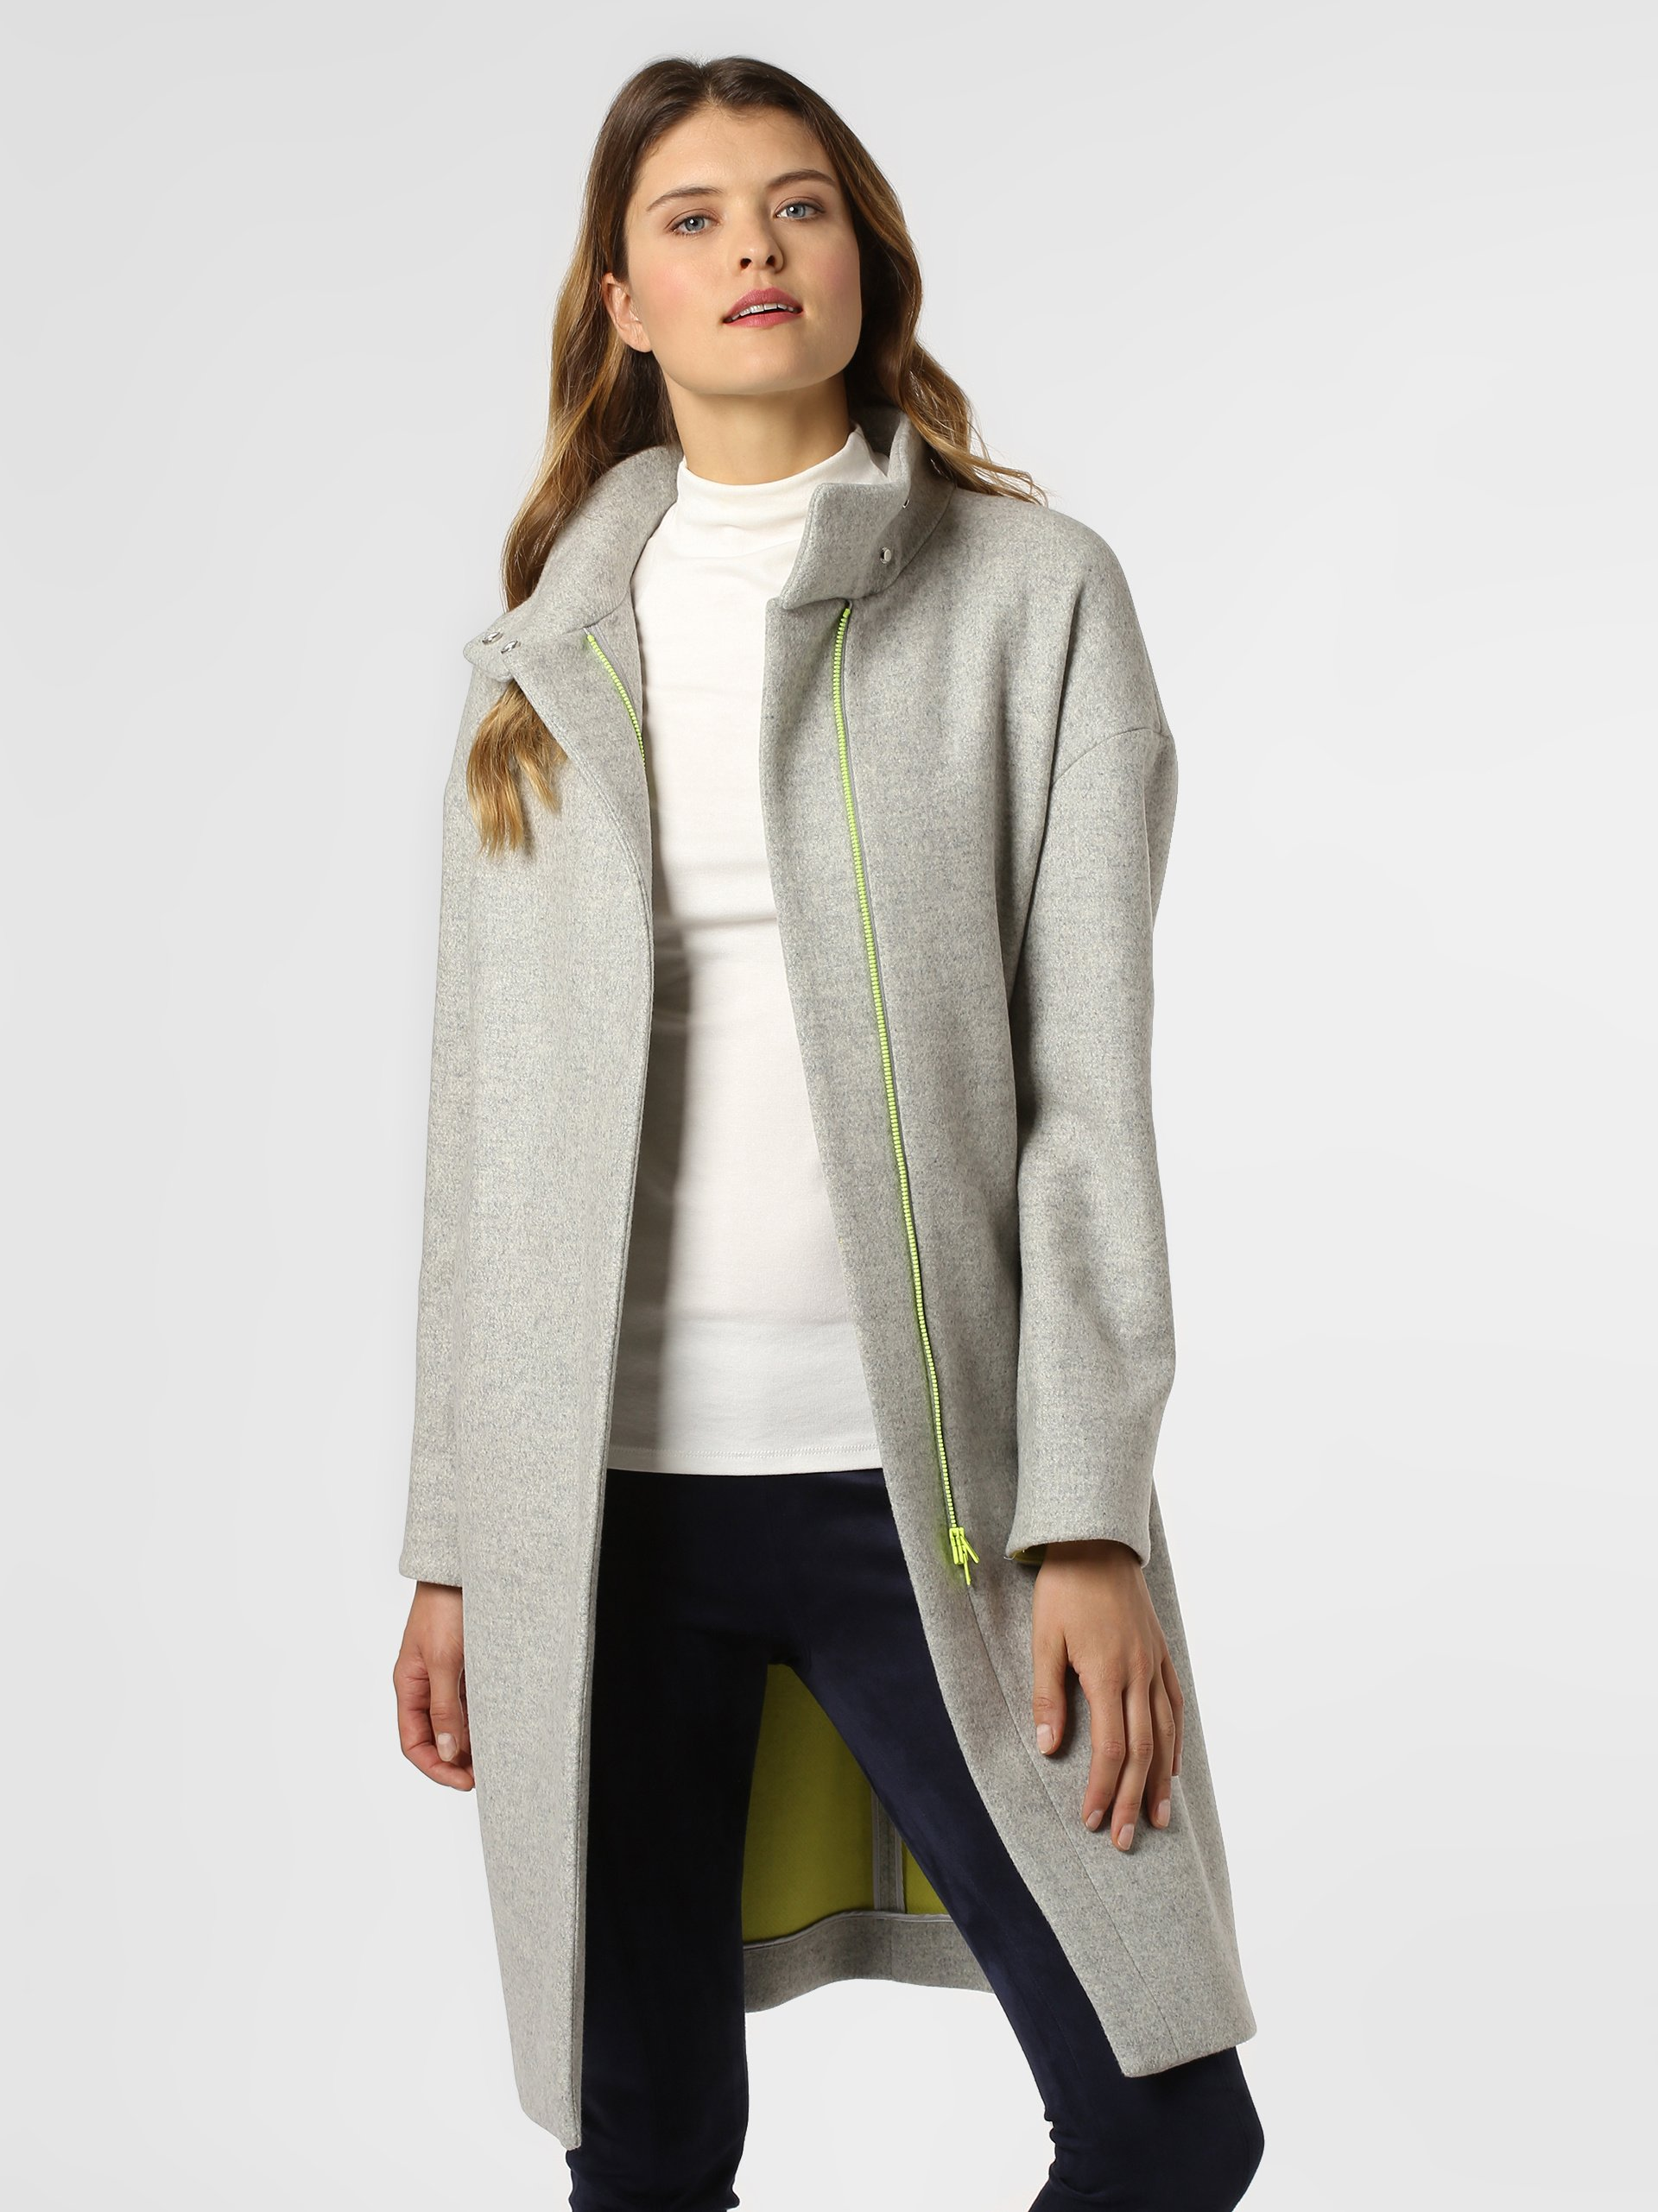 Marc Cain Sports Damen Mantel